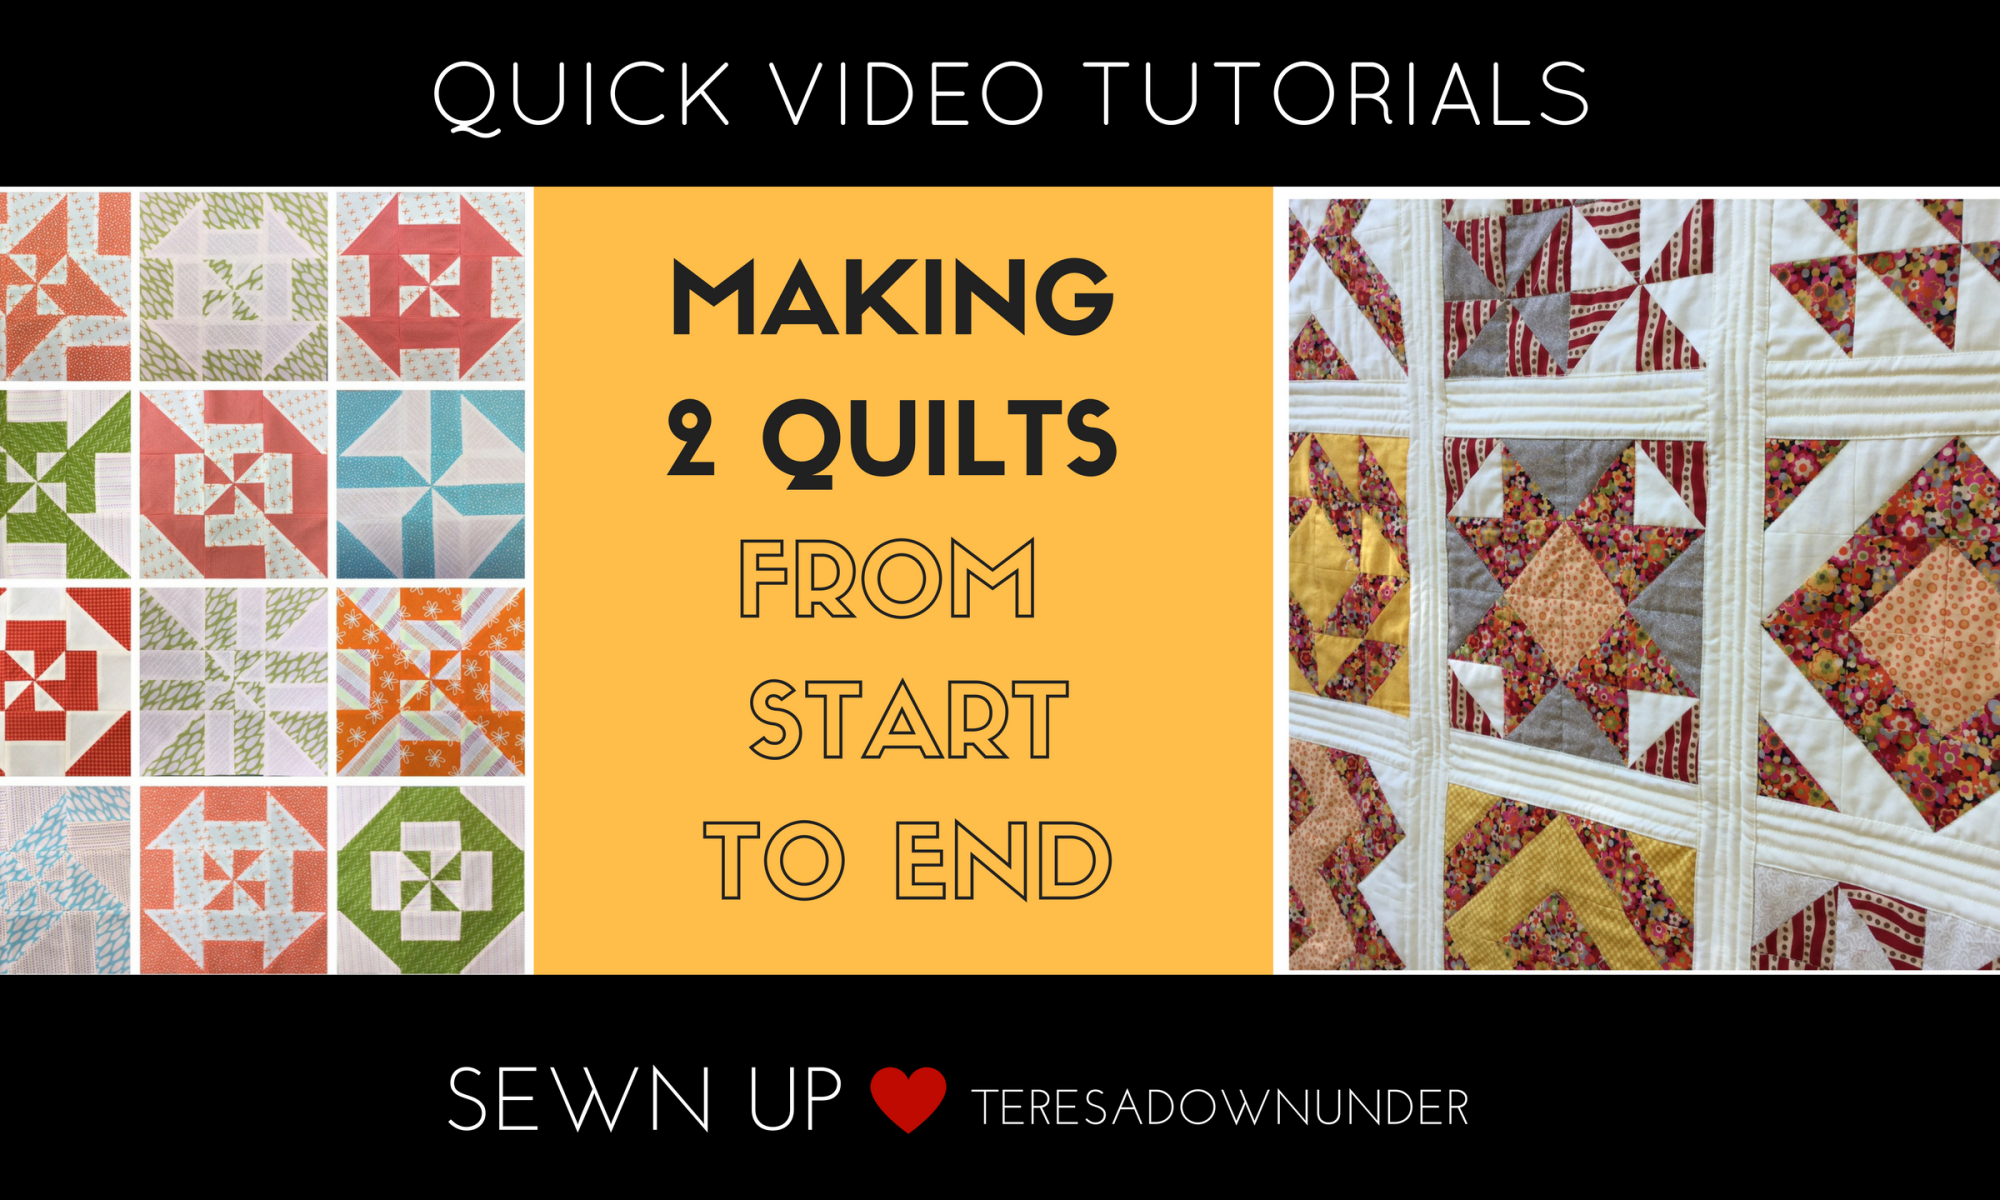 Making 2 quilts from start to end - 7 quick video tutorials